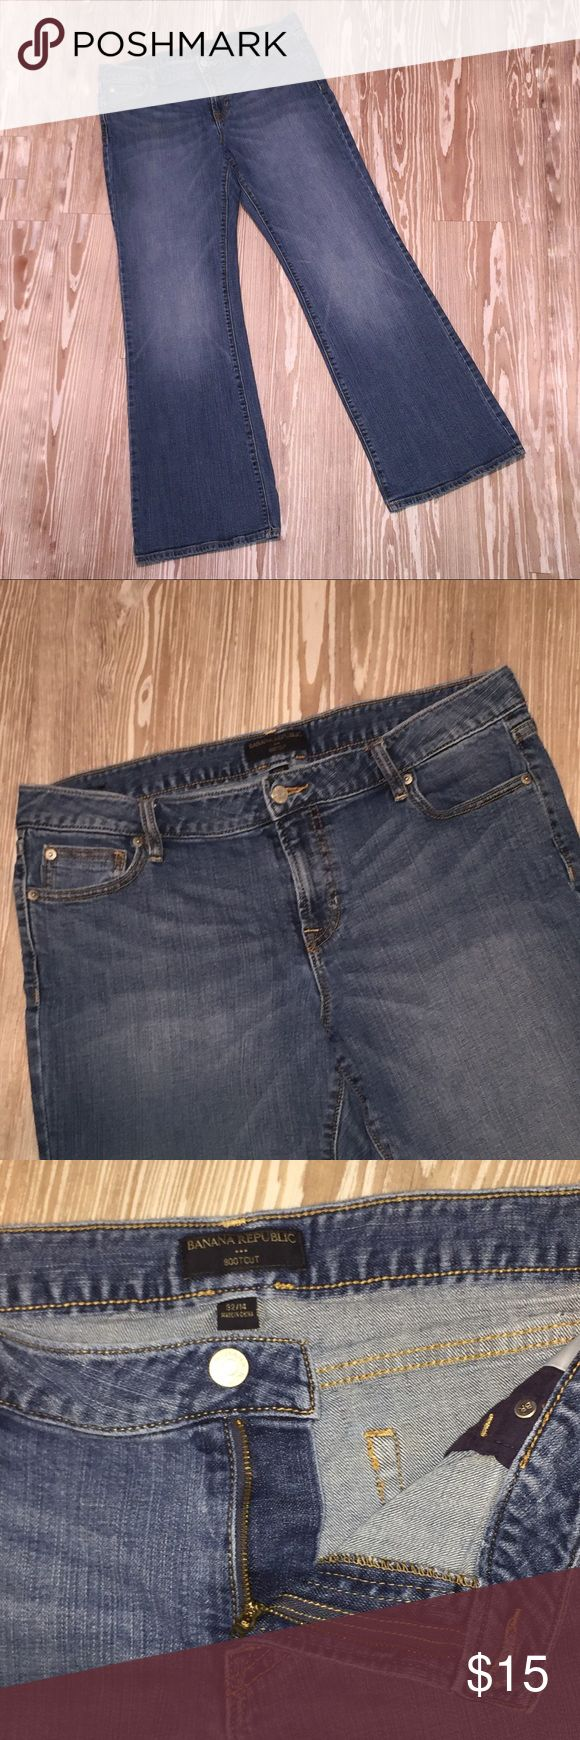 Banana Republic 32/14 Bootcut Jeans Stretch Used, in good condition, Banana Republic jeans in size 32/14. Bootcut. Medium wash. Distressed. Stretch. Belt loops in tact. No holes in pockets. Button and zipper work. Some general wear.  Made in China 99% Cotton 1% Spandex Waist 18 inches Hips 19 inches Rise 10 inches Out seam 41 inches Inseam 32 inches Hem 11 inches AD Banana Republic Jeans Boot Cut